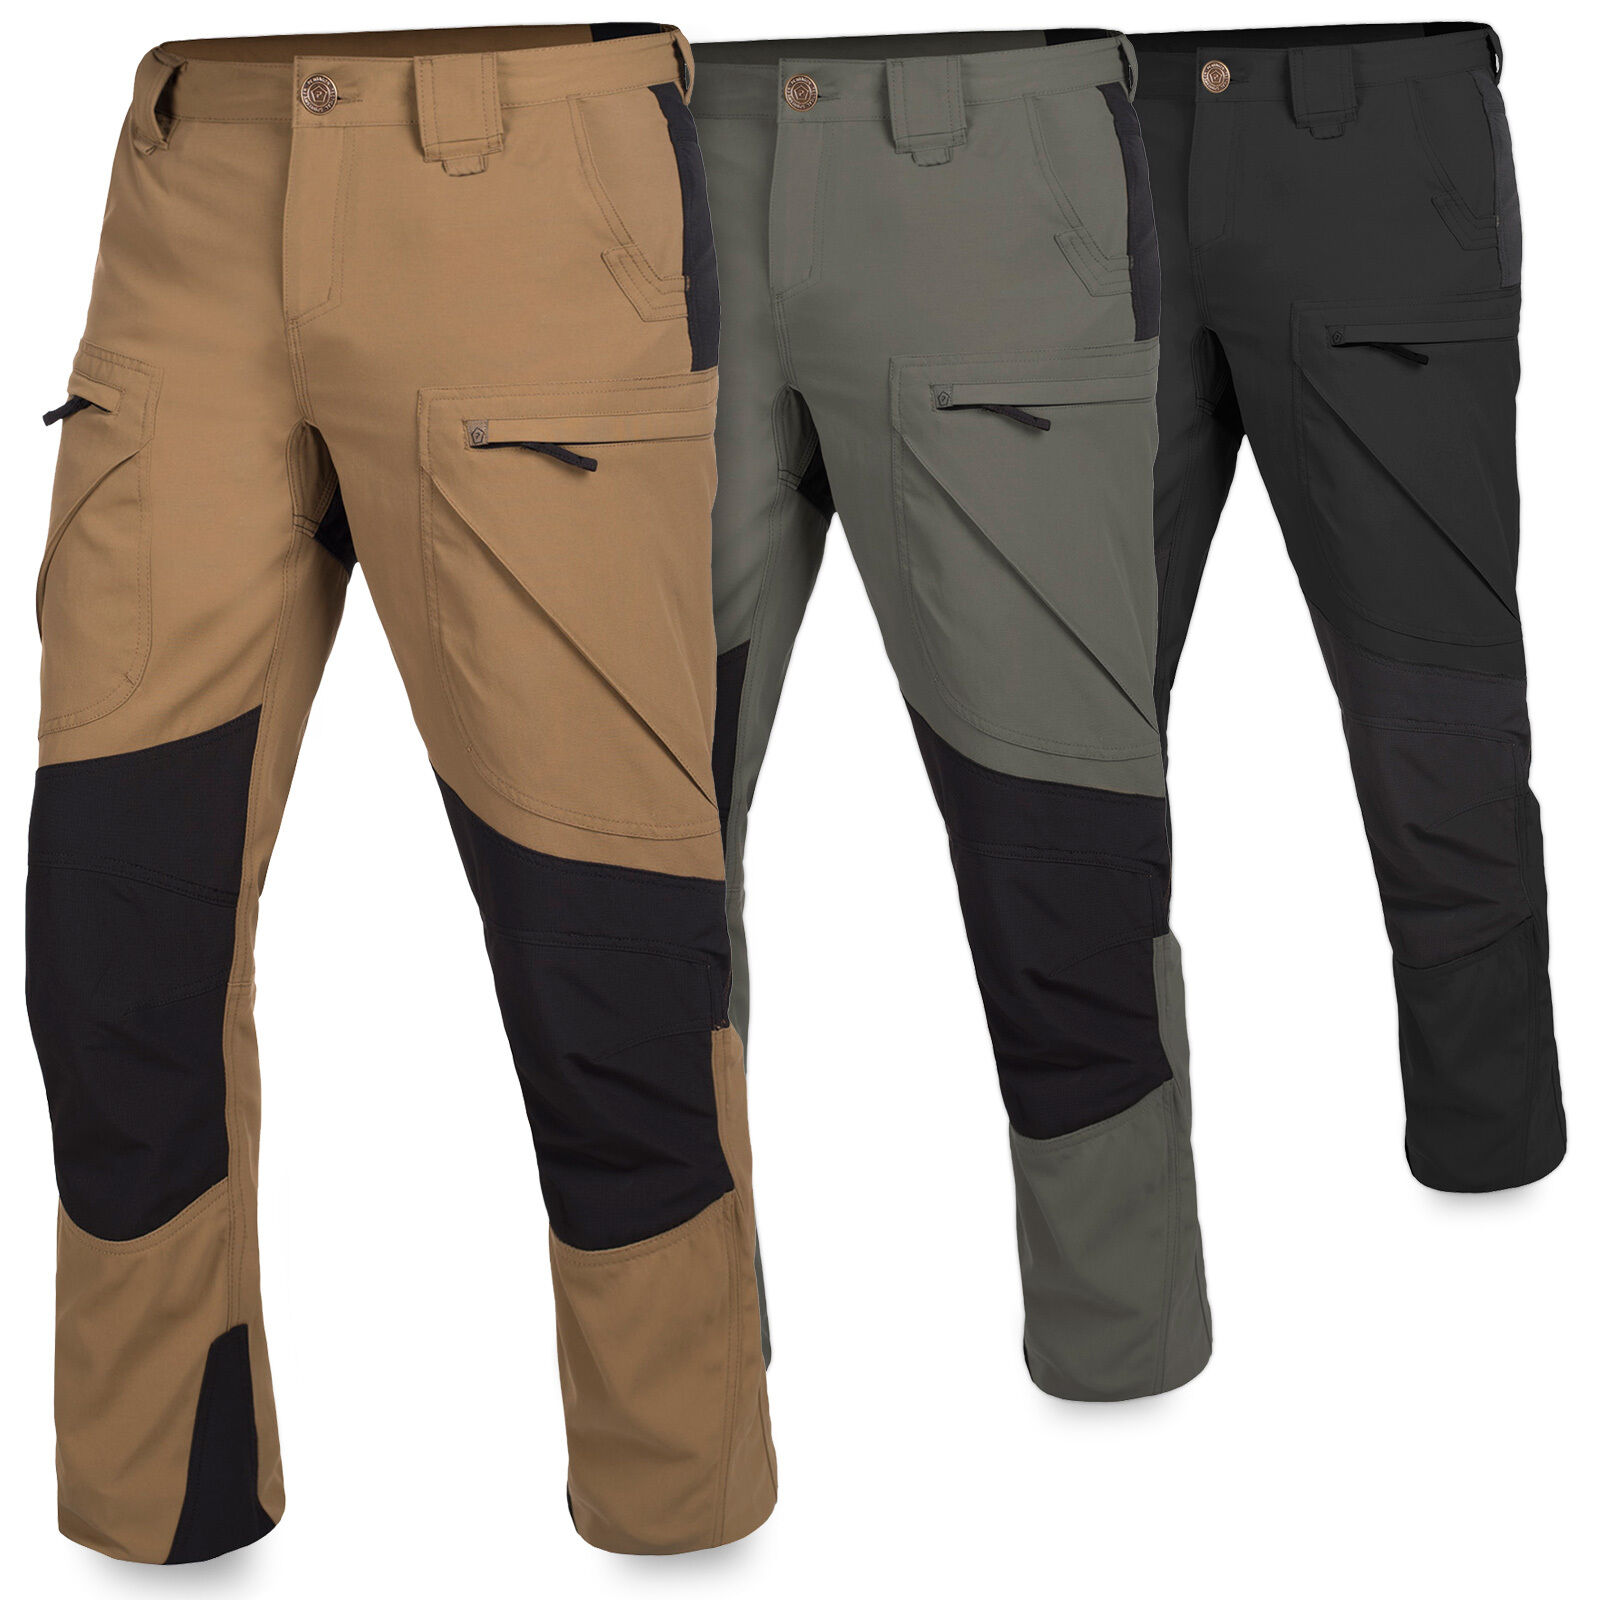 Pentagon Vorras Tactical Military Army Combat Climbing Hiking Trousers Pants NEW